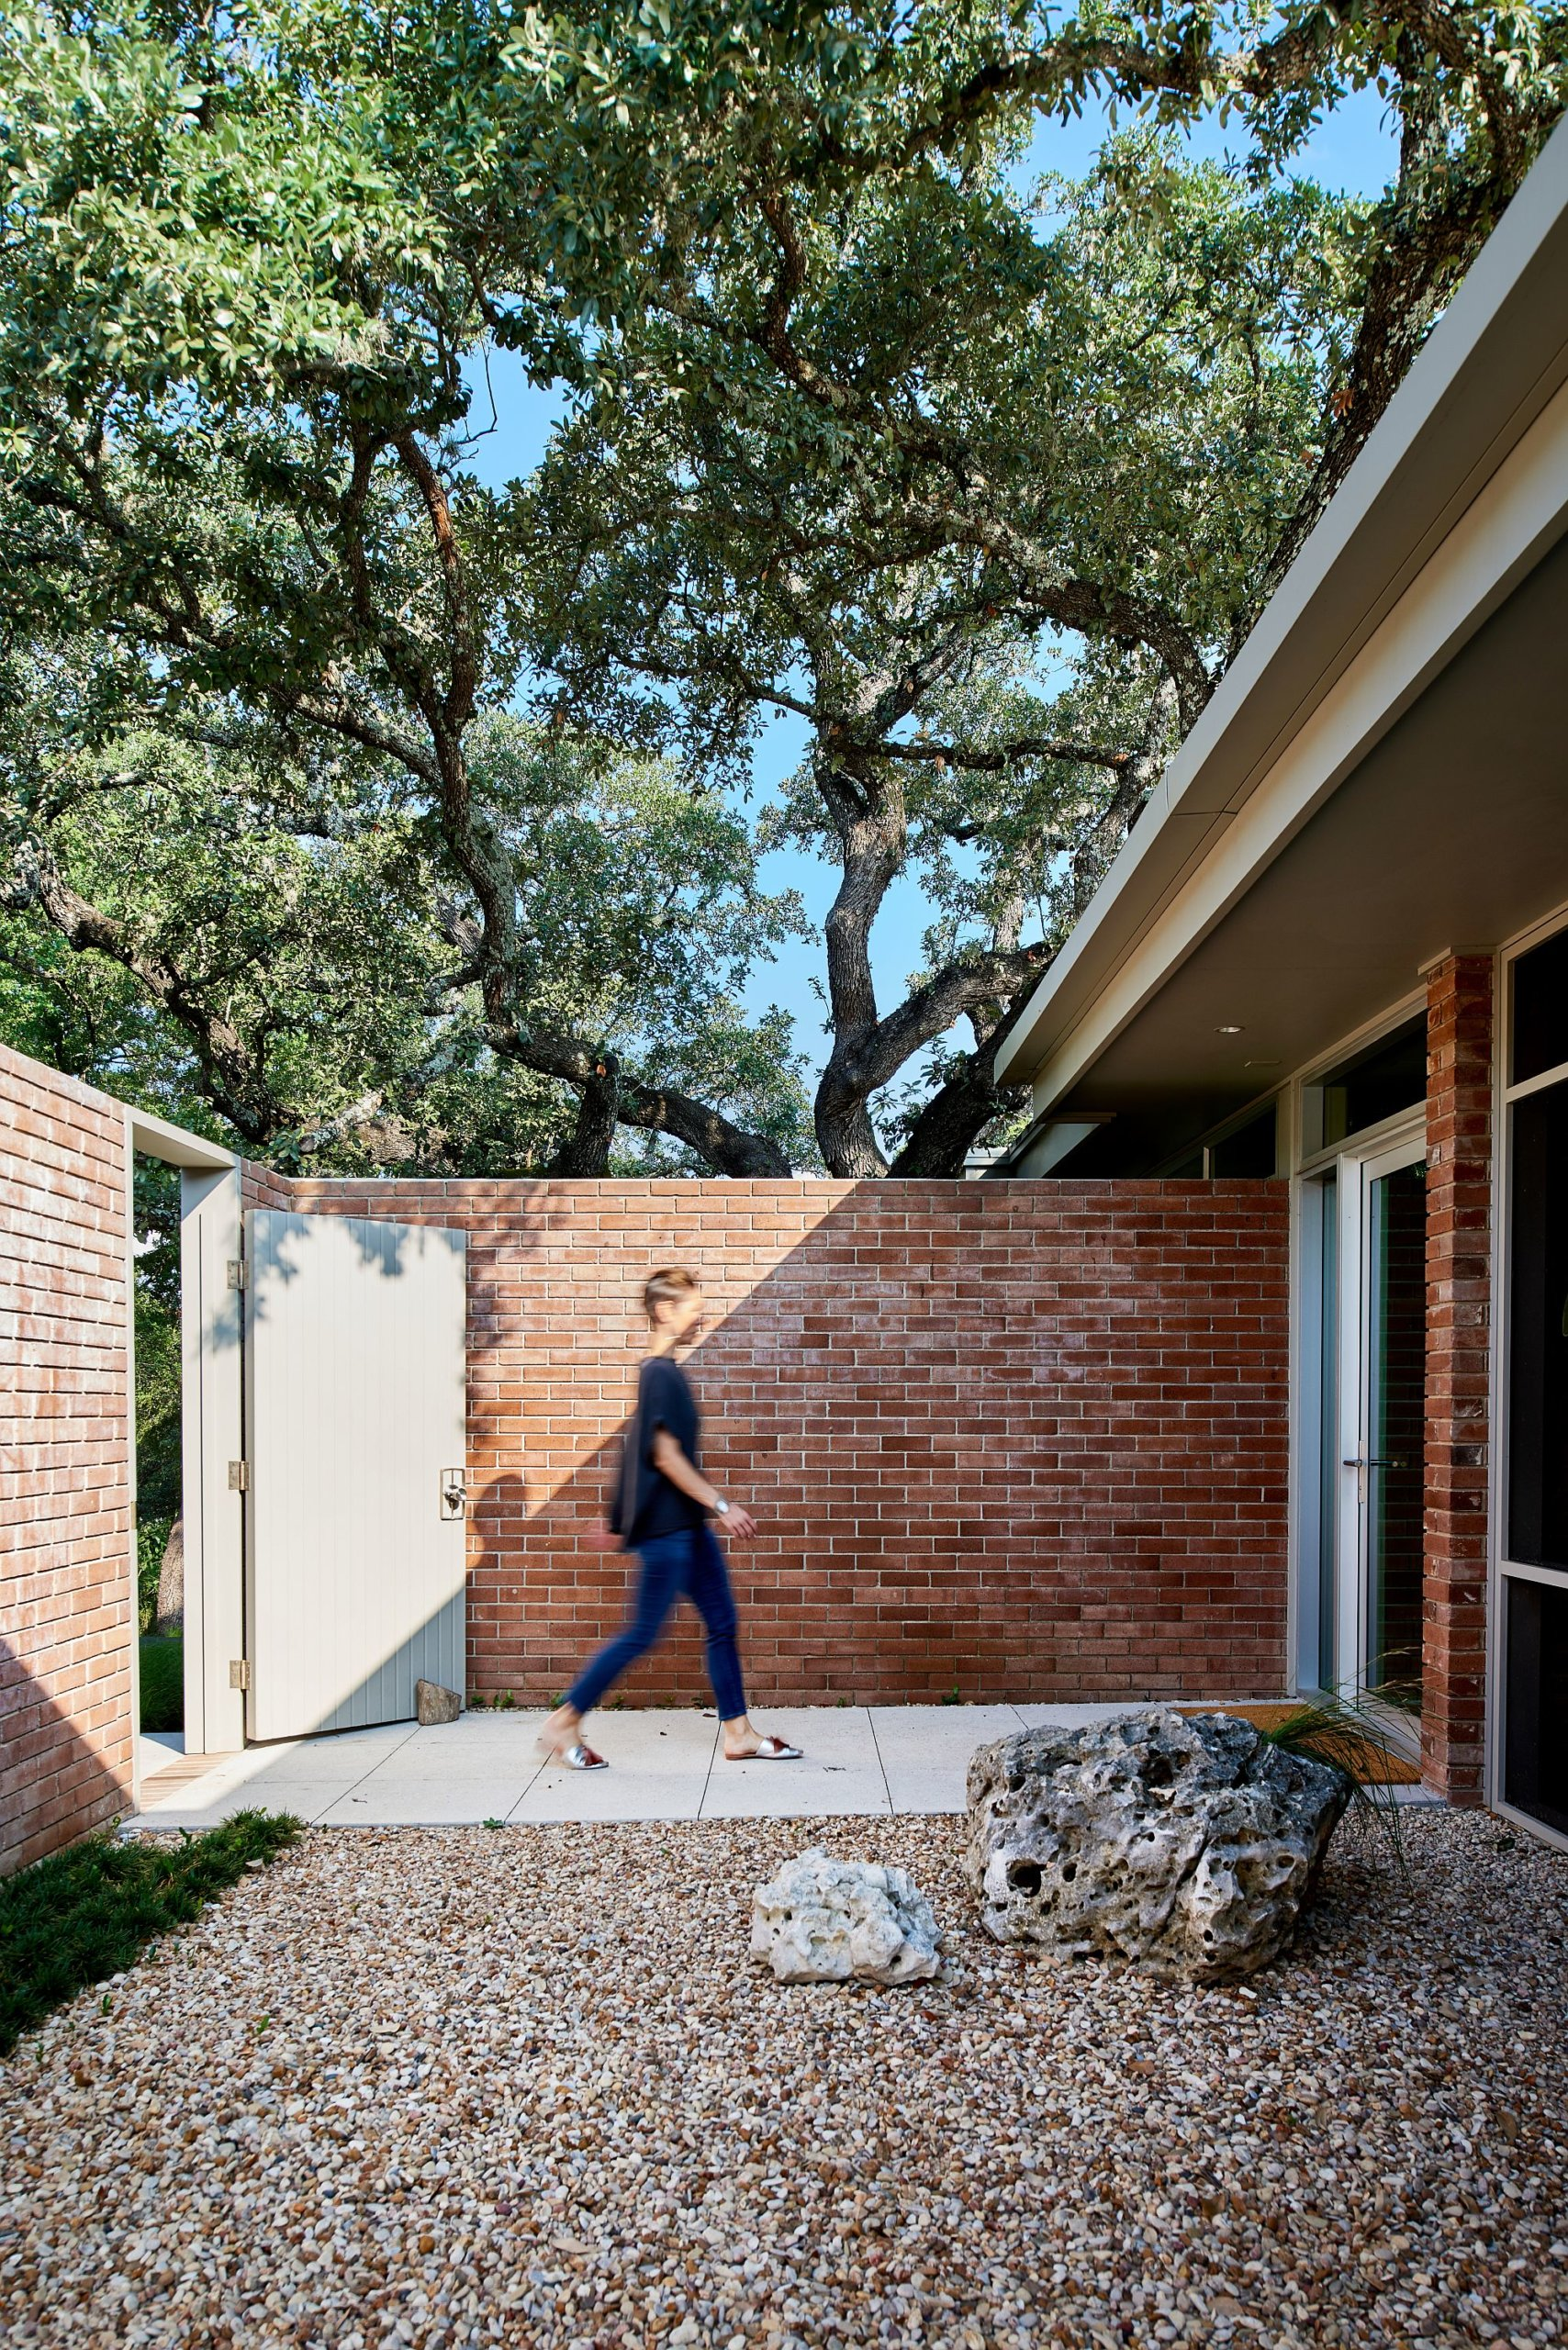 Brick walls and a new facade welcome you at the Balcones Residence